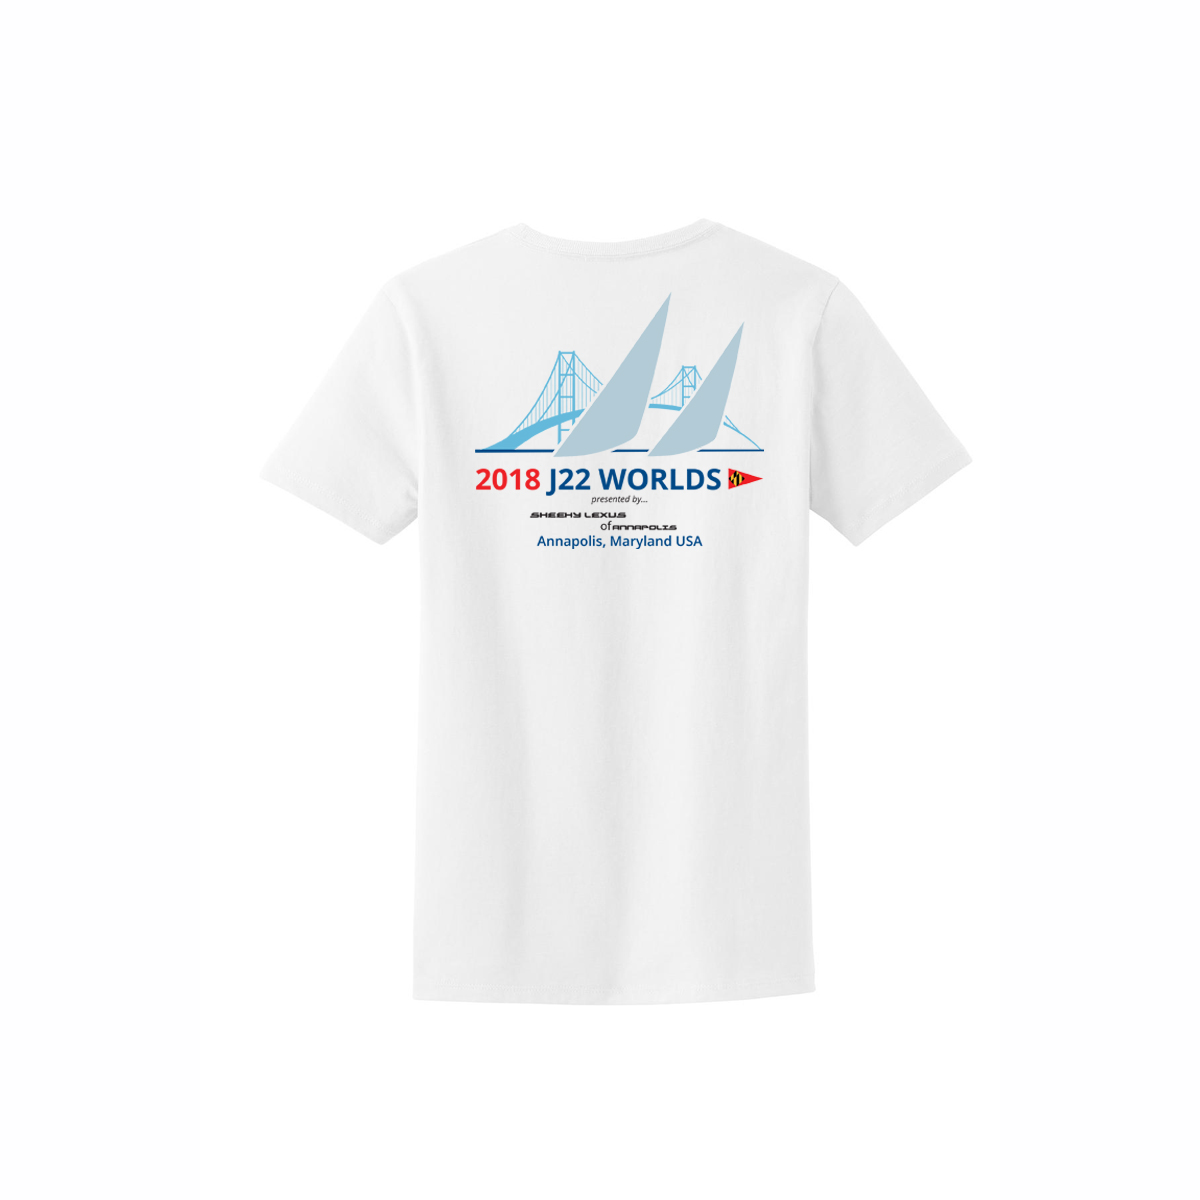 J22 WORLDS - Women's COTTON  T-SHIRT